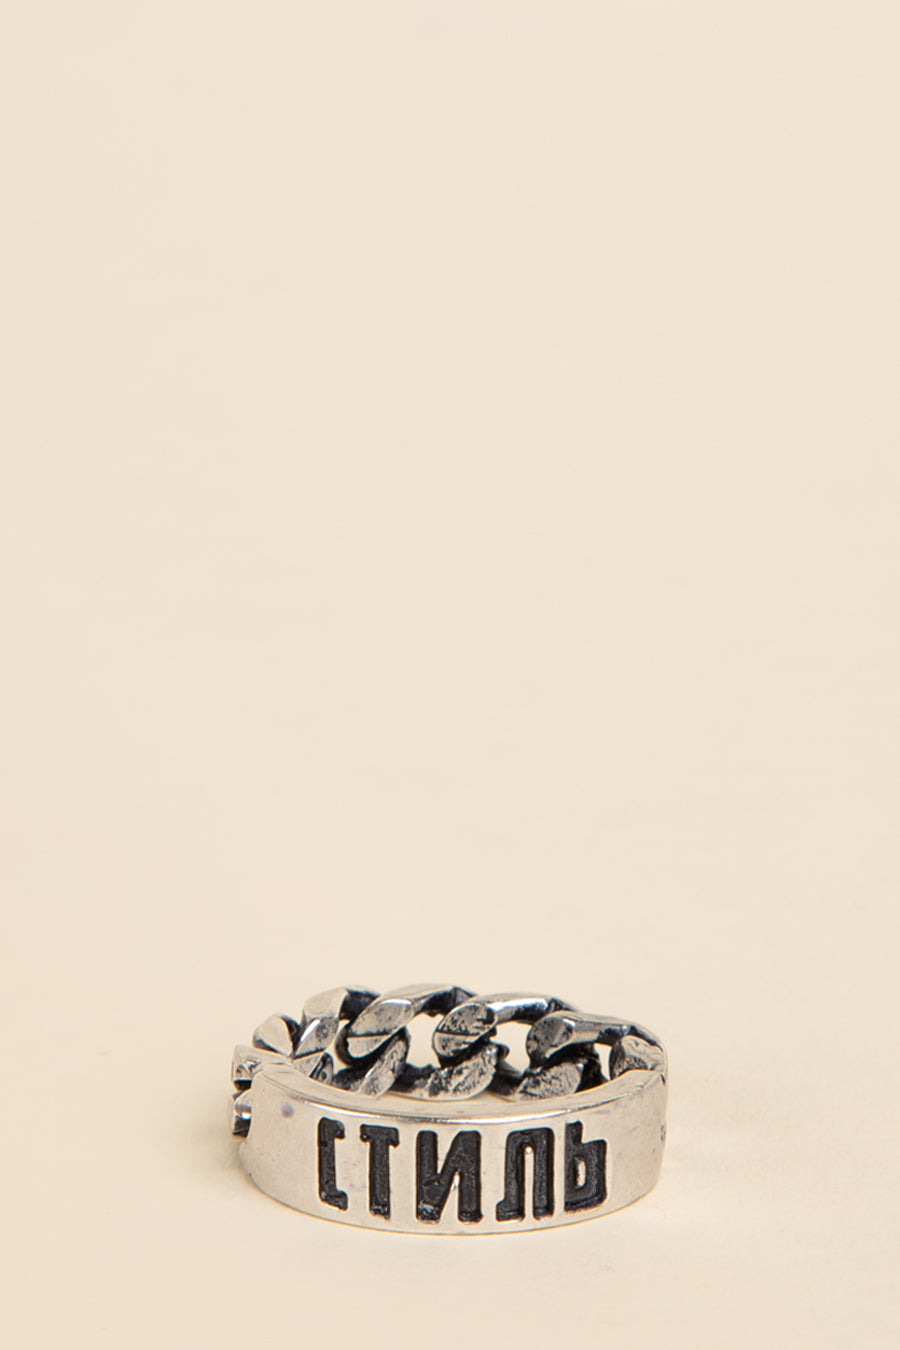 Heron Preston - Silver CTNMb Chain Ring